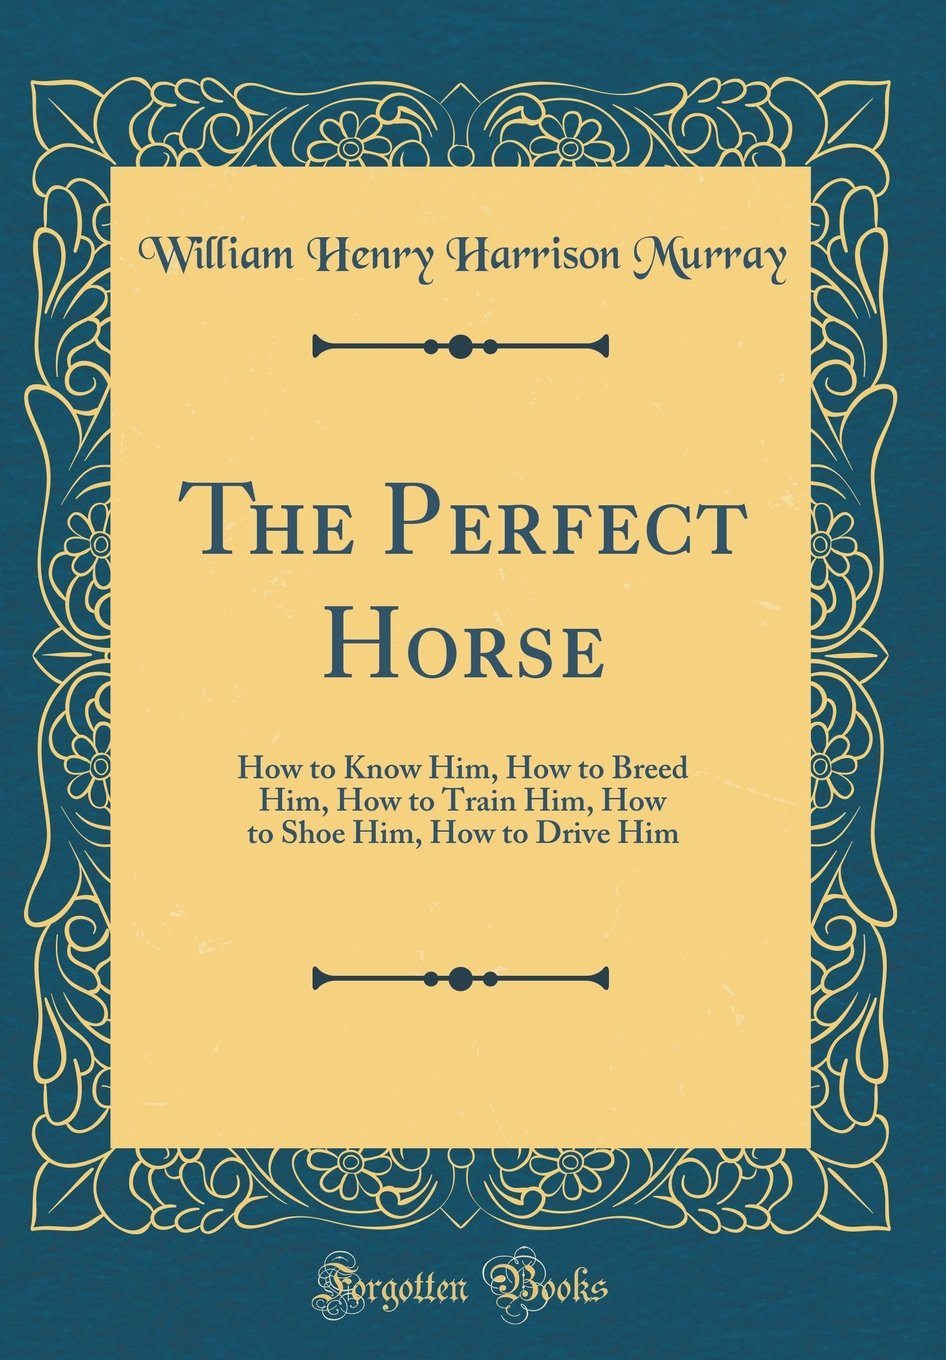 The Perfect Horse: How to Know Him, How to Breed Him, How to Train Him, How to Shoe Him, How to Drive Him (Classic Reprint) pdf